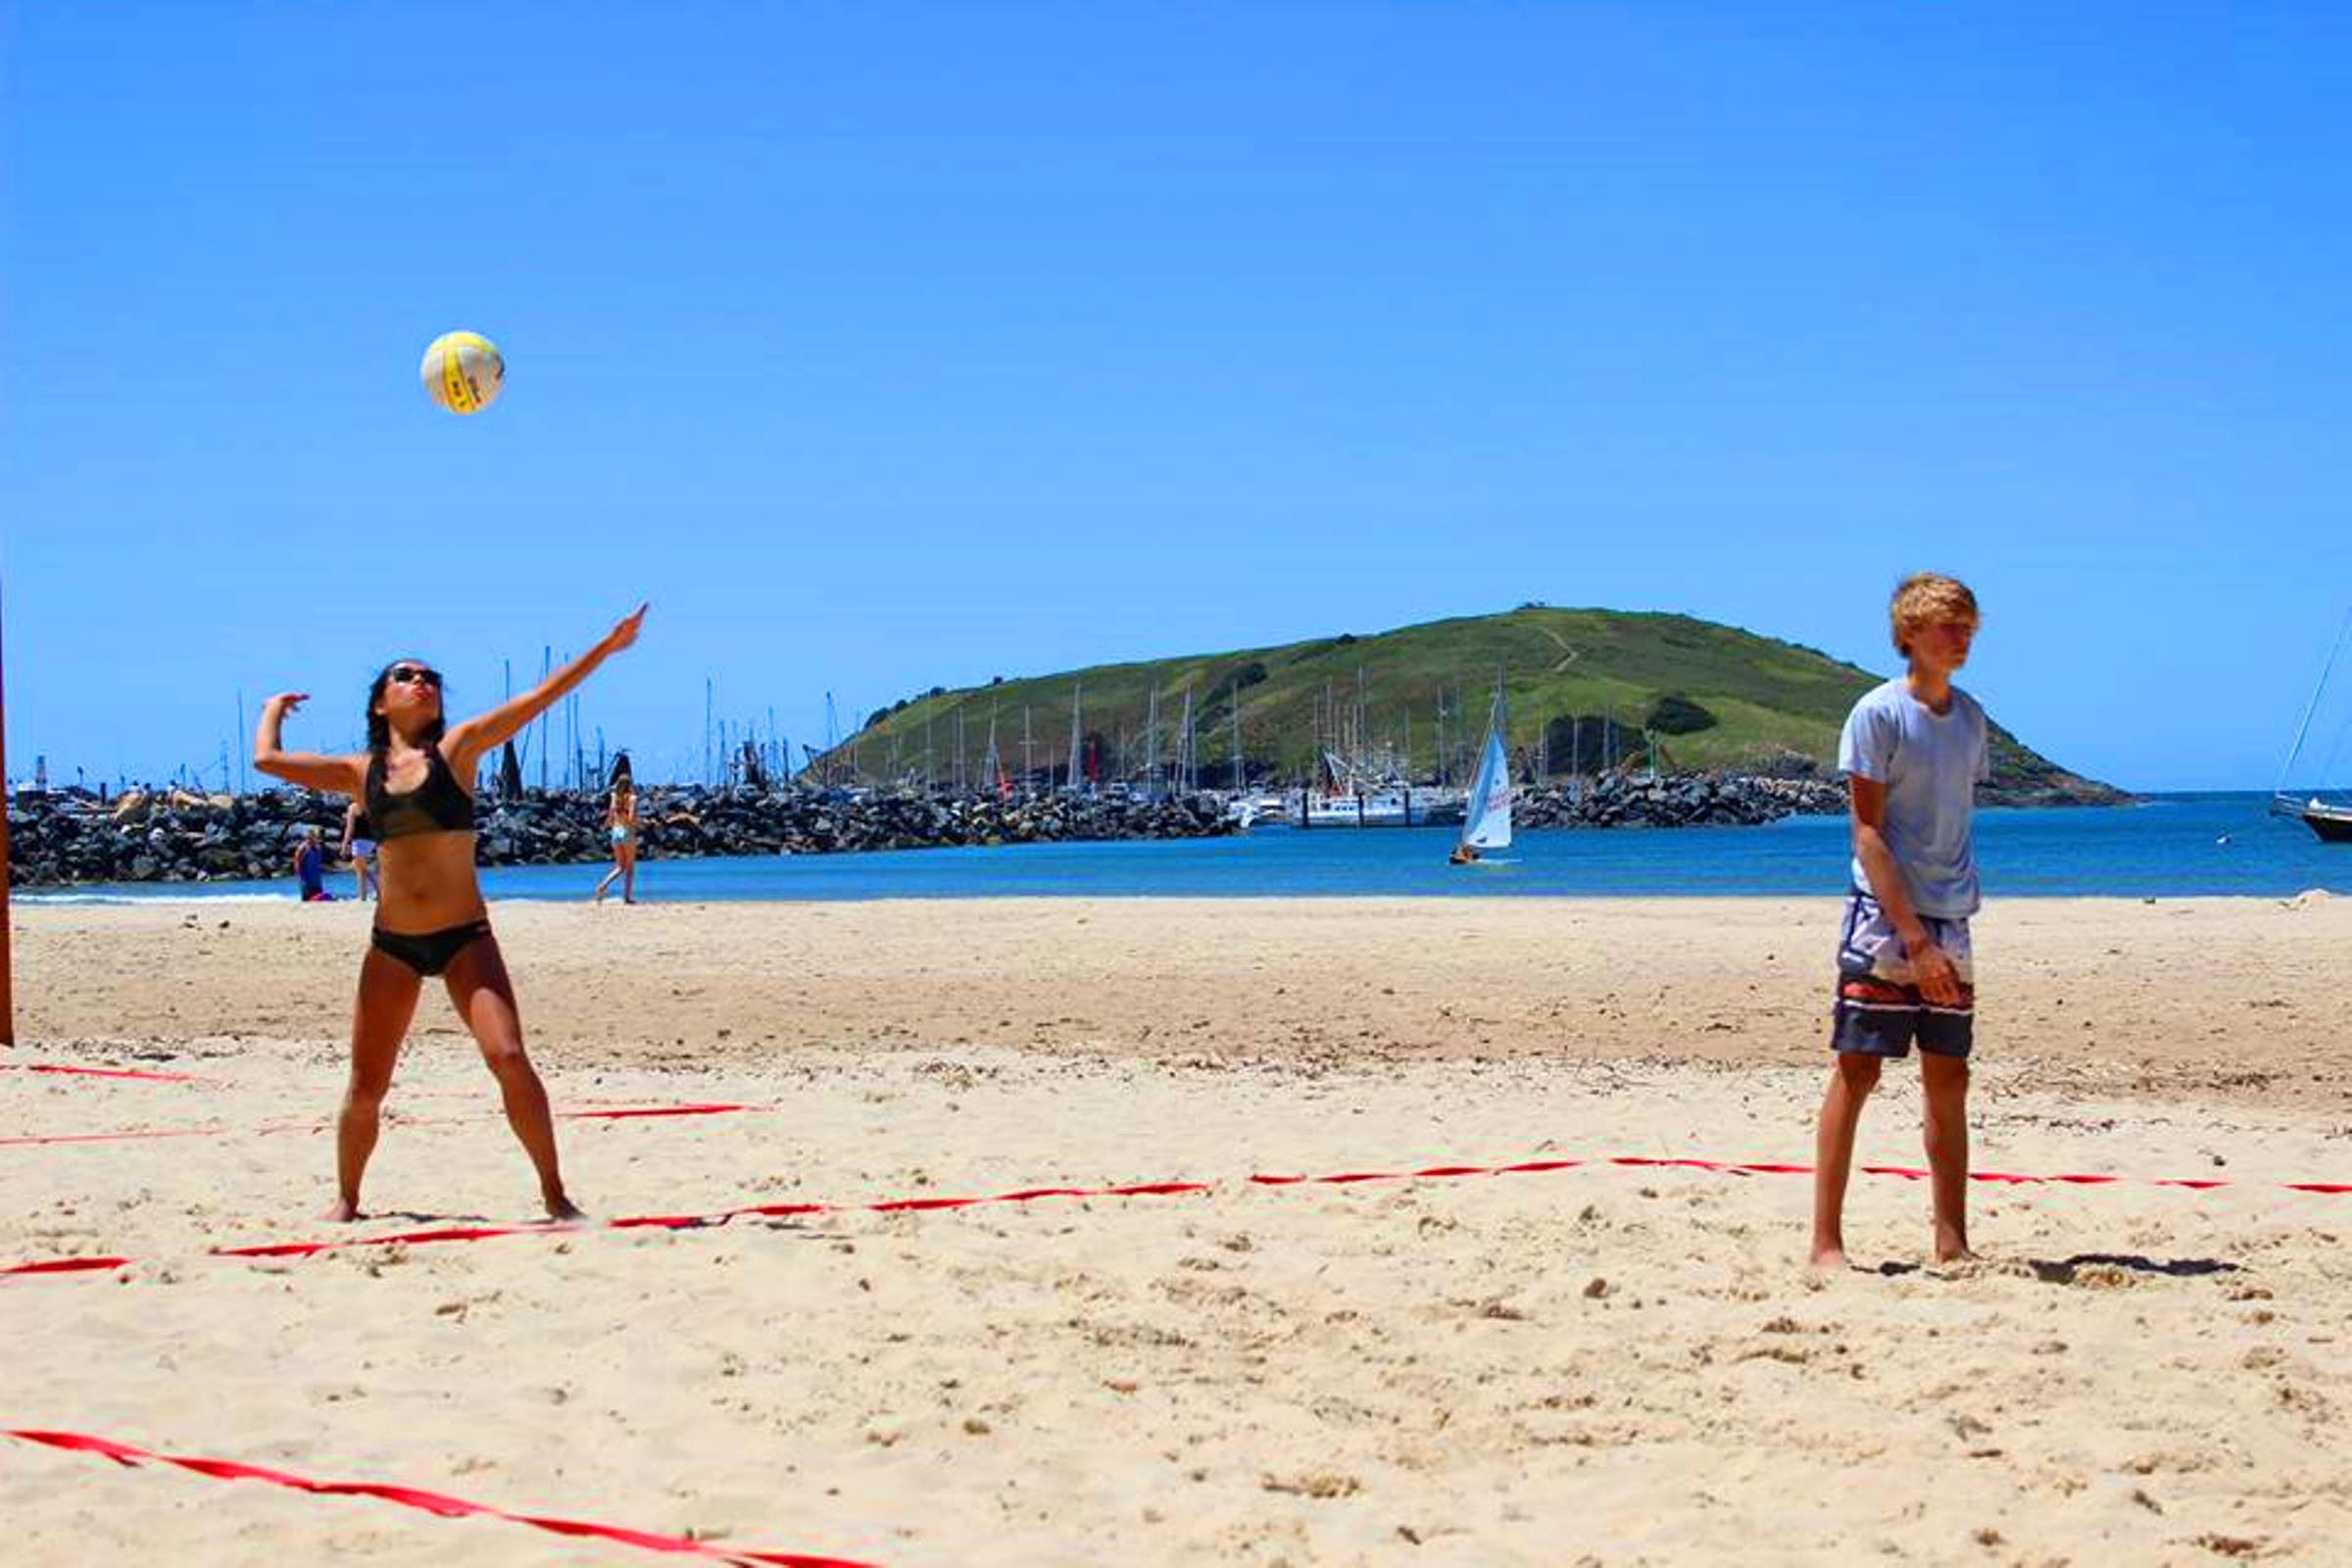 Mixed beach volleyball players